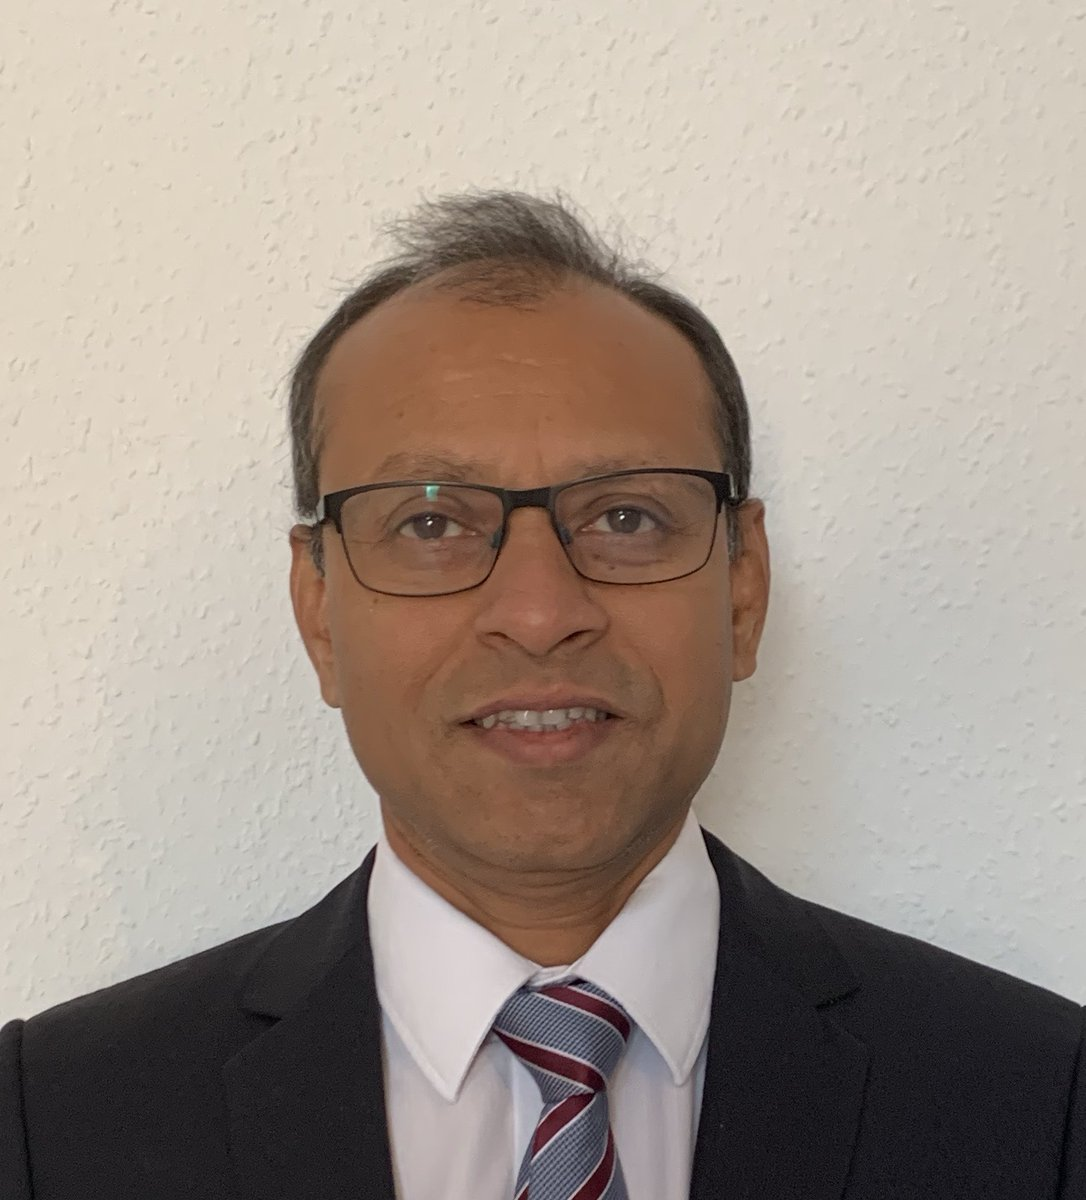 """Shirish Joshi, CEO of Maxer Endoscopy, says: """"Light is the key!"""" Read more about the potential of fluorescence imaging technologies, #AR as an enabler for the surgery of the future, and why innovations in endoscopy need the best light! https://t.co/ieBzprj2r2 https://t.co/tEVnaY95X2"""